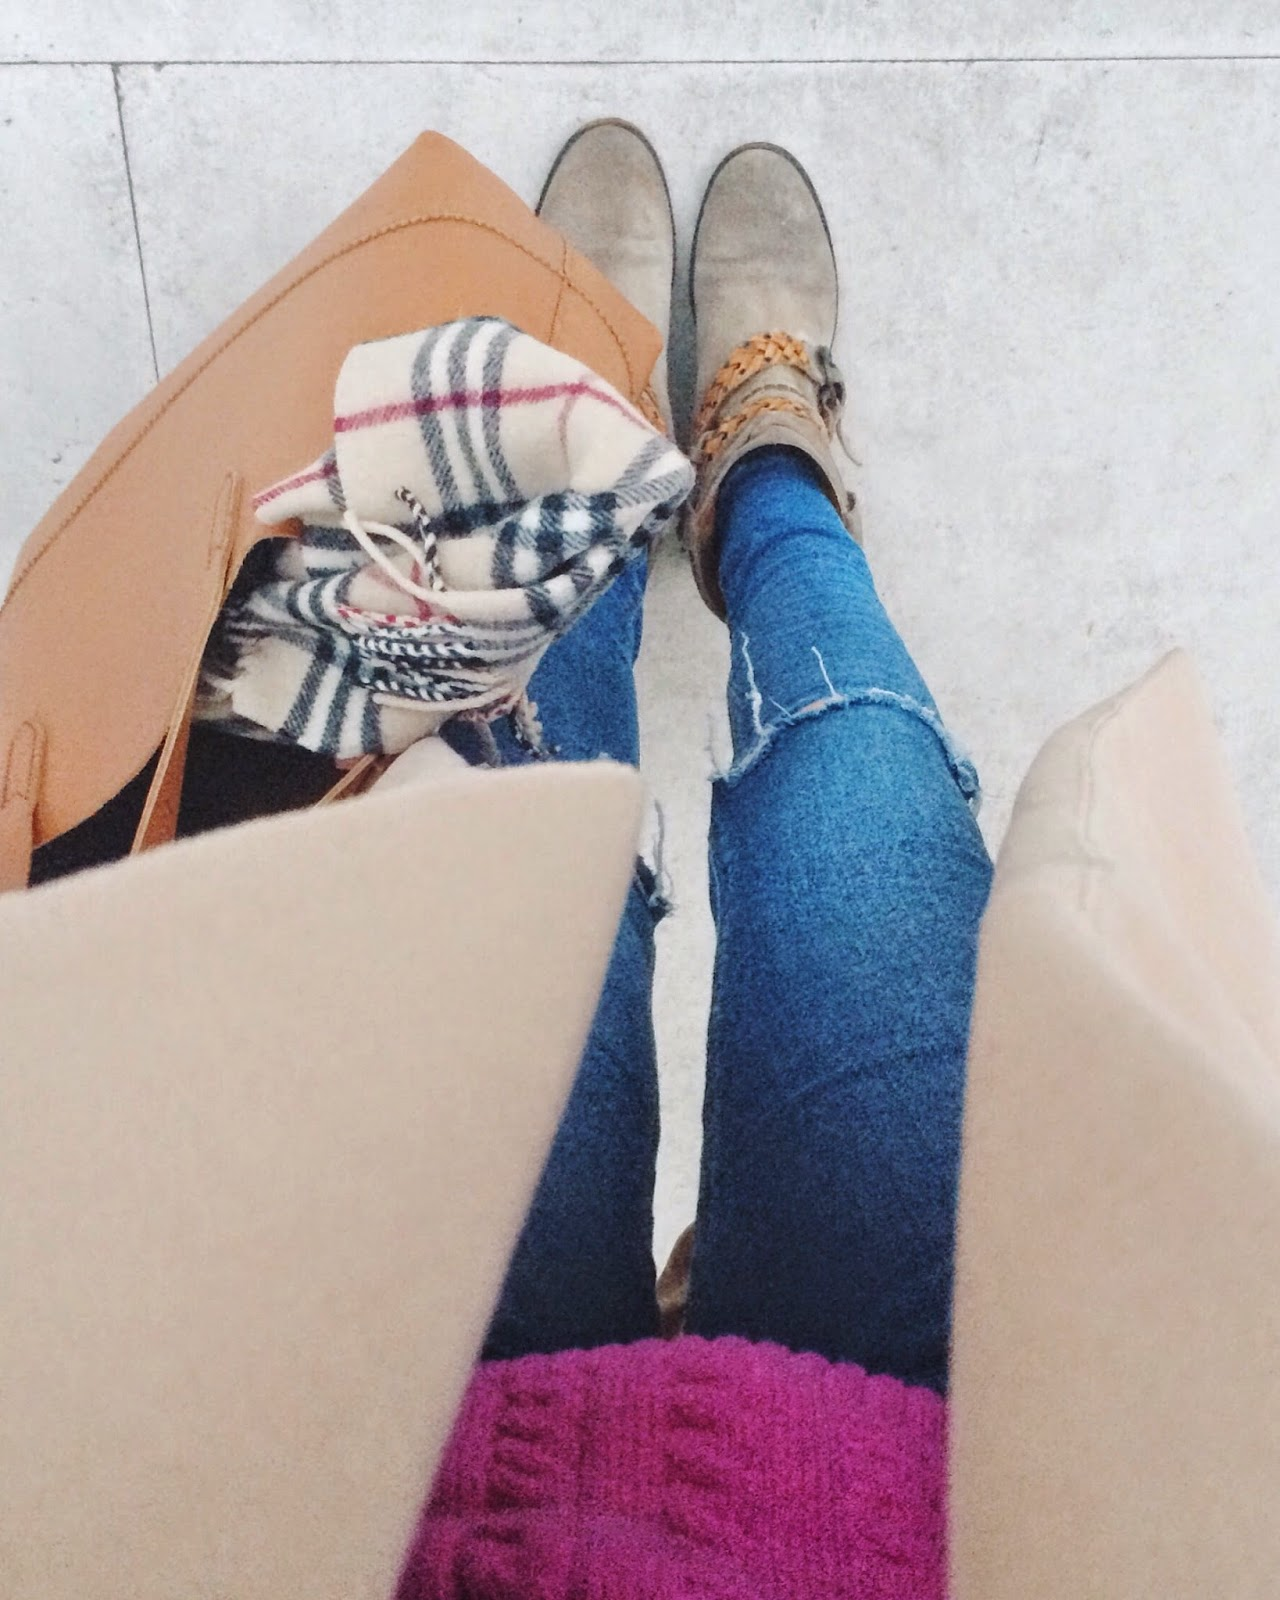 fwis, asos jeans, asos skinny jeans, camle coat, burberry, burberry scarf, pink cable knit jumper